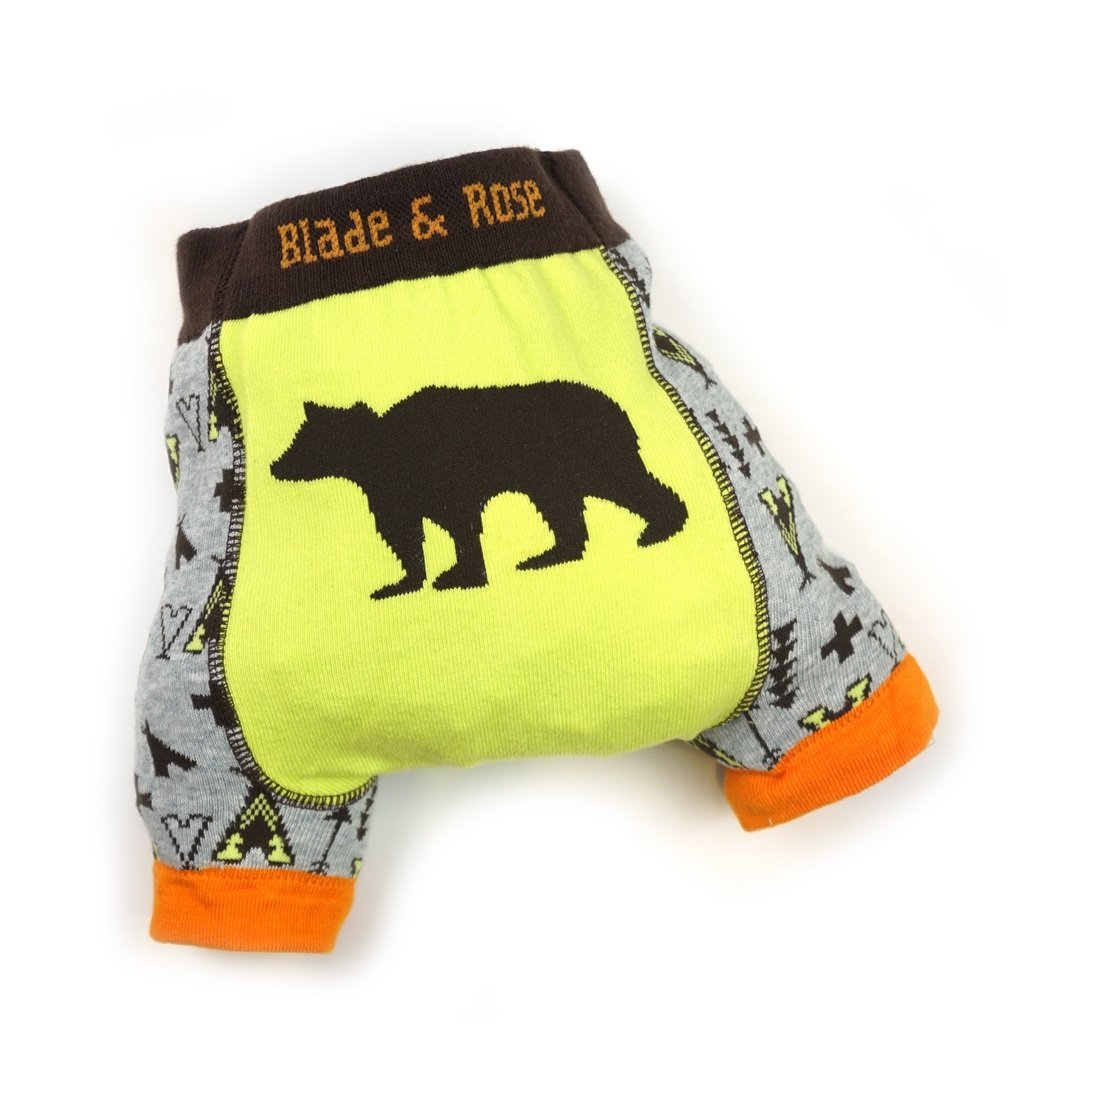 blade and rose Summer Shorts - Grizzly Bear Camping Design - 6-12 mths